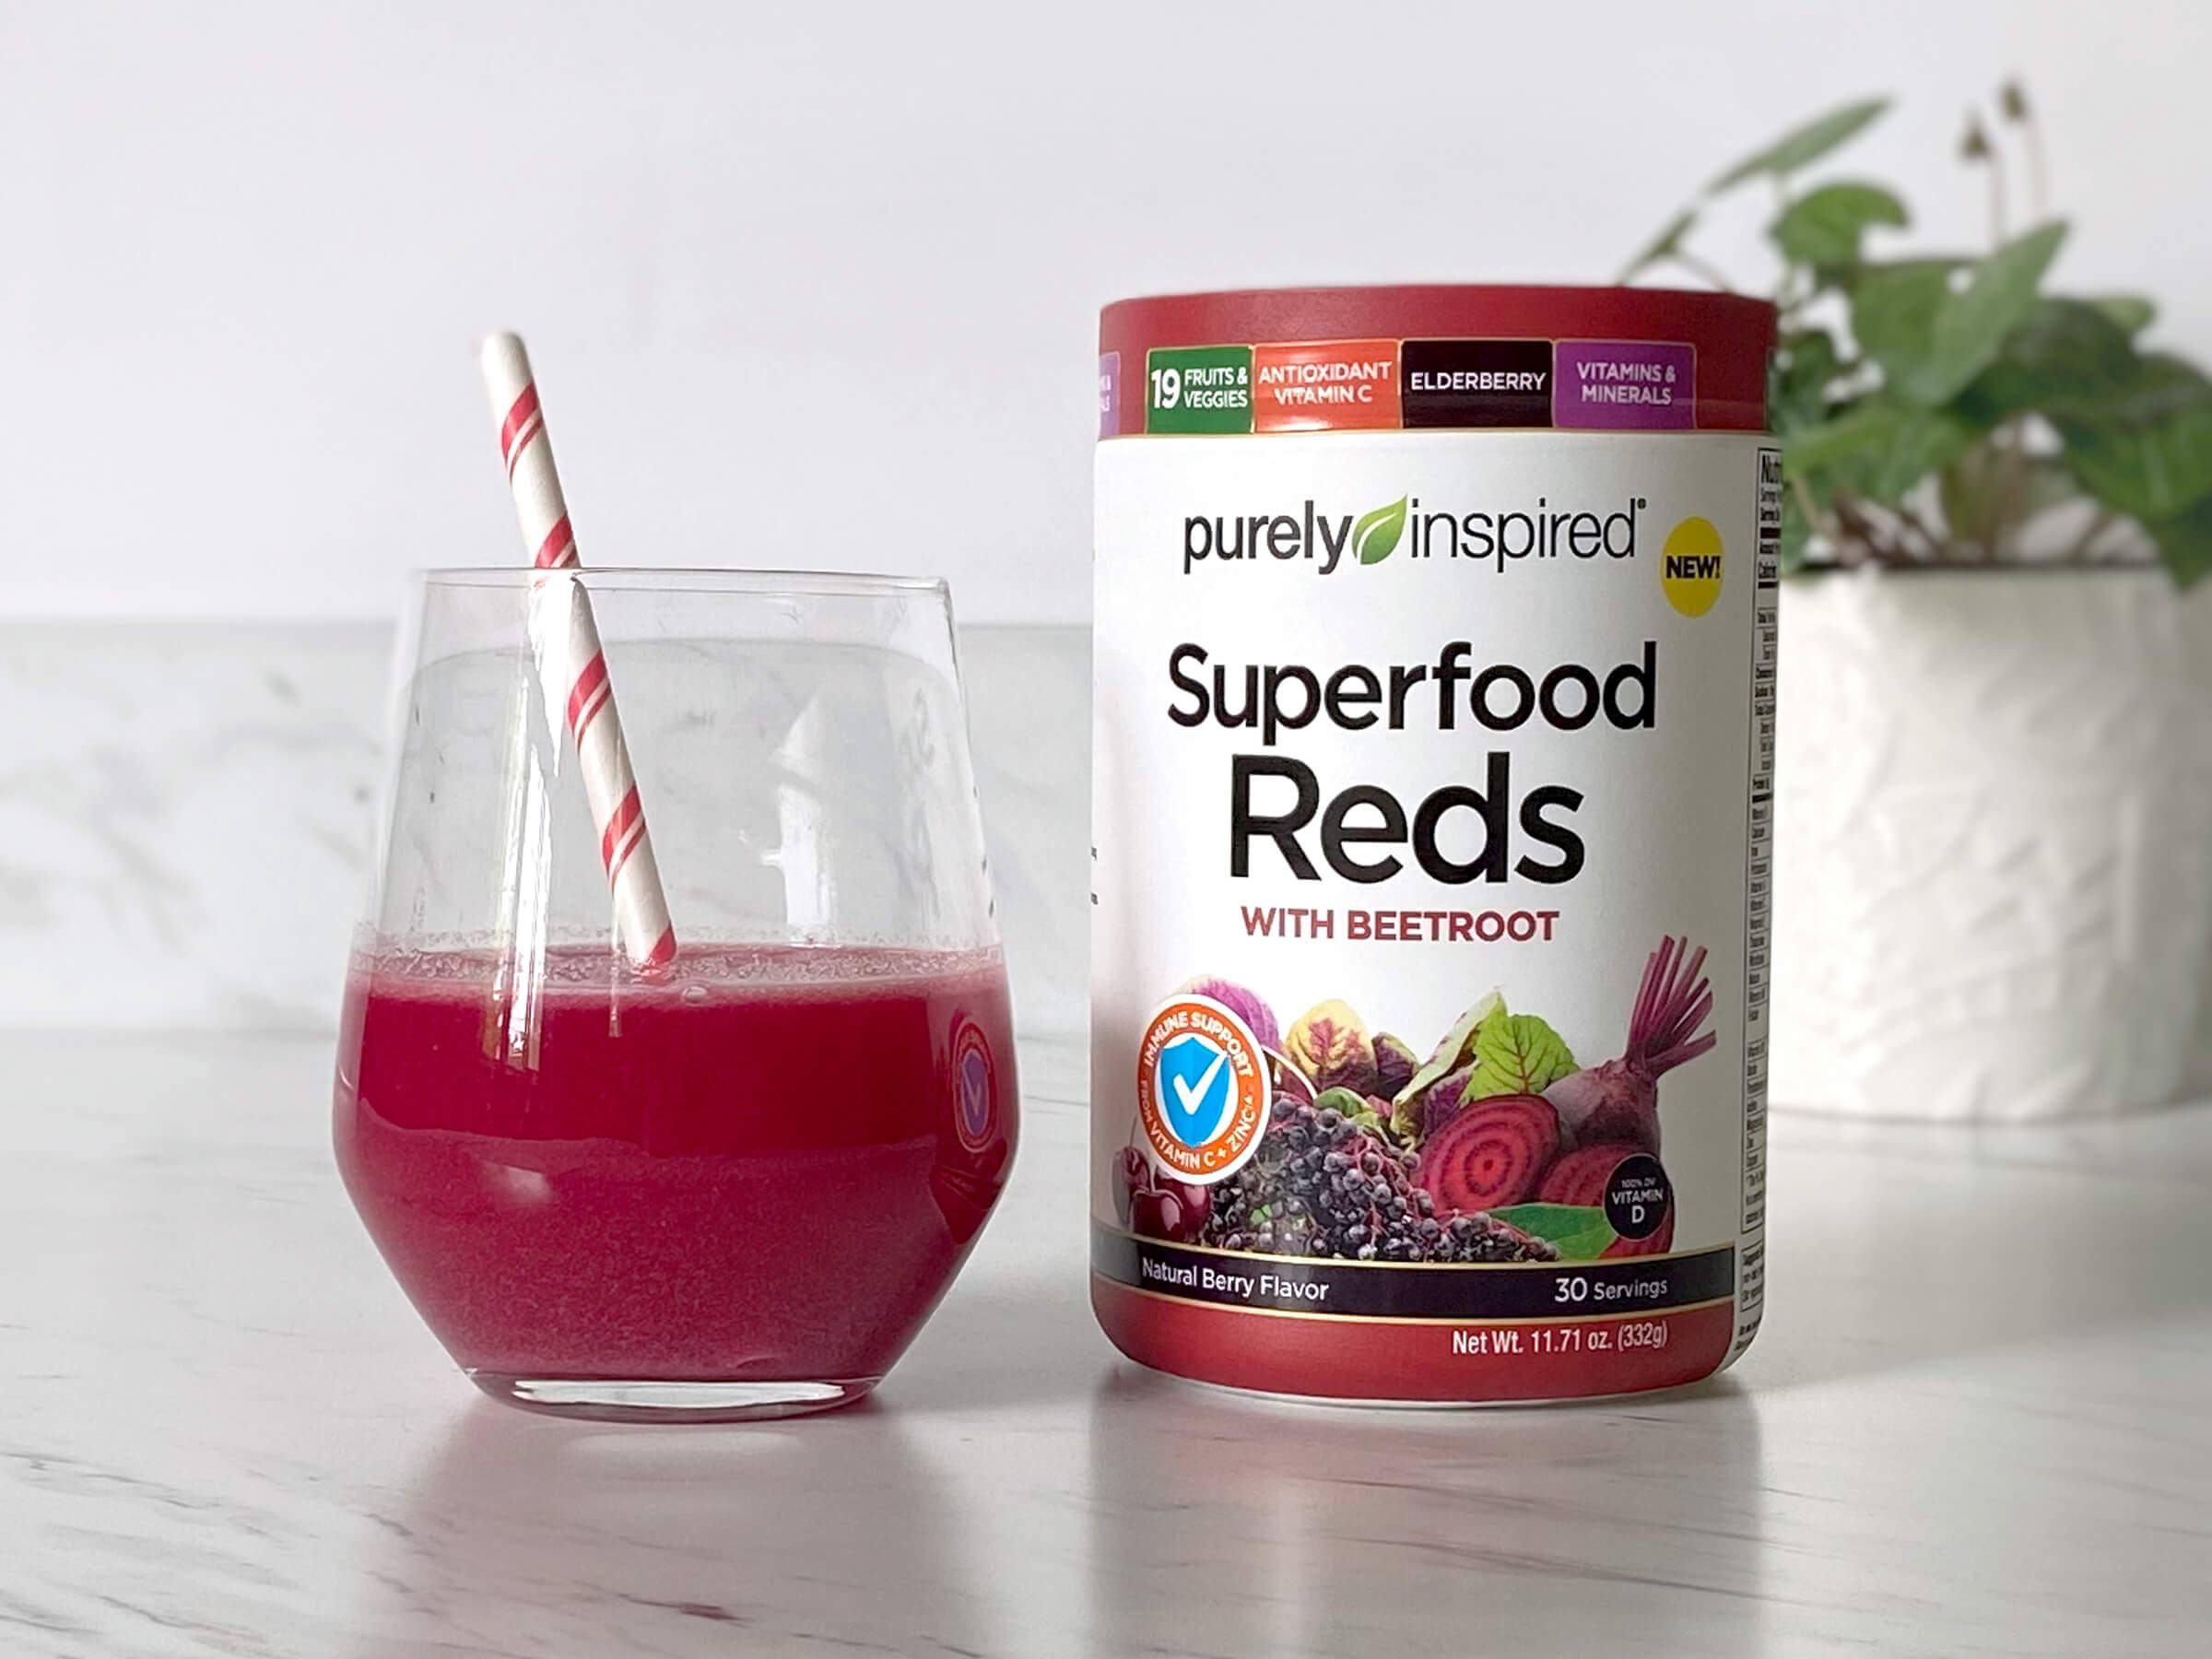 FRUITS&ANTIOXIDANT 19 VEGGIES VITAMINS & MINERALS ELDERBERRY VITAMINC purelydinspired NEW! Superfood Ředs WITH BEETROOT SUPPORT VITAMIN D Natural Berry Flavor 30 Servings Net Wt. 11.71 oz. (332g) INCIA FRUITS&ANTIOXIDANT 19 VEGGIES VITAMINS & MINERALS ELDERBERRY VITAMINC purelydinspired NEW! Superfood Ředs WITH BEETROOT SUPPORT VITAMIN D Natural Berry Flavor 30 Servings Net Wt. 11.71 oz. (332g) INCIA